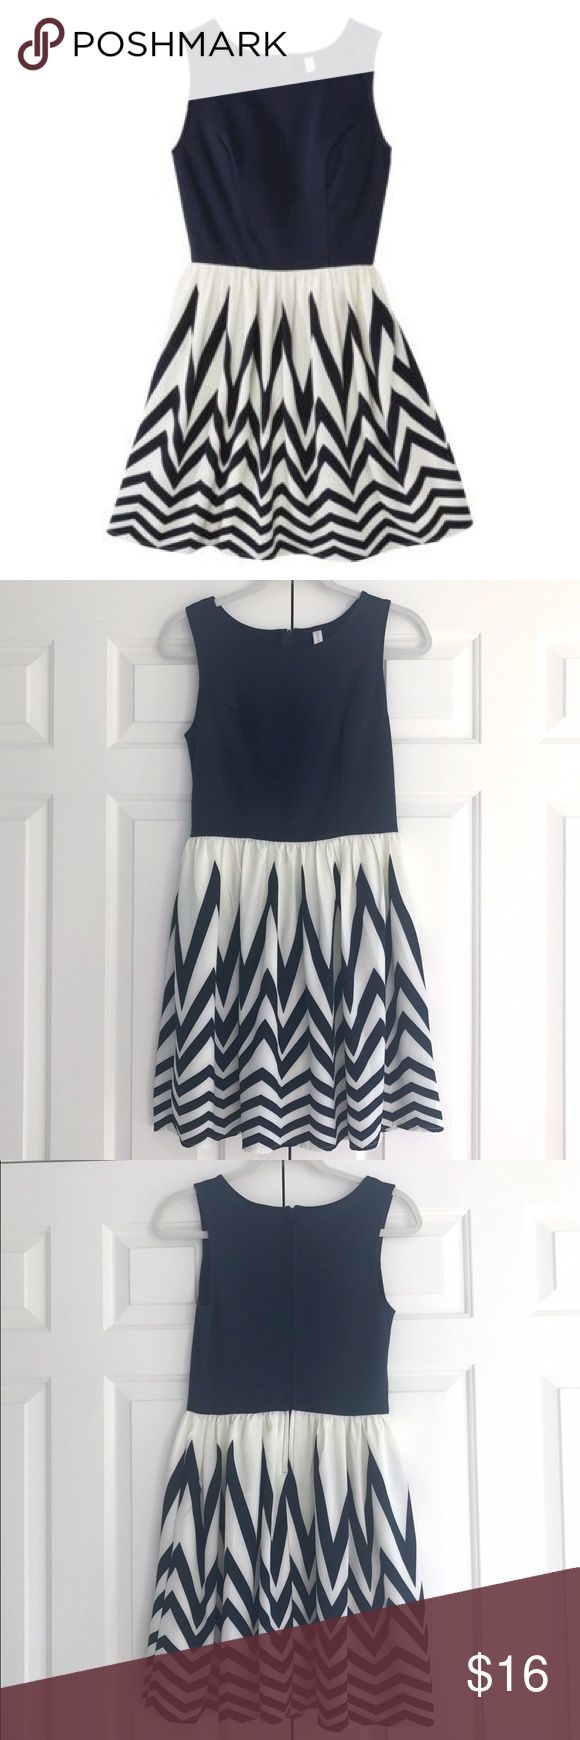 Target Xhilaration Navy Chevron Dress Only worn twice, in like new condition. Top half is solid navy and the bottom half is navy chevron. Xhilaration Dresses Mini